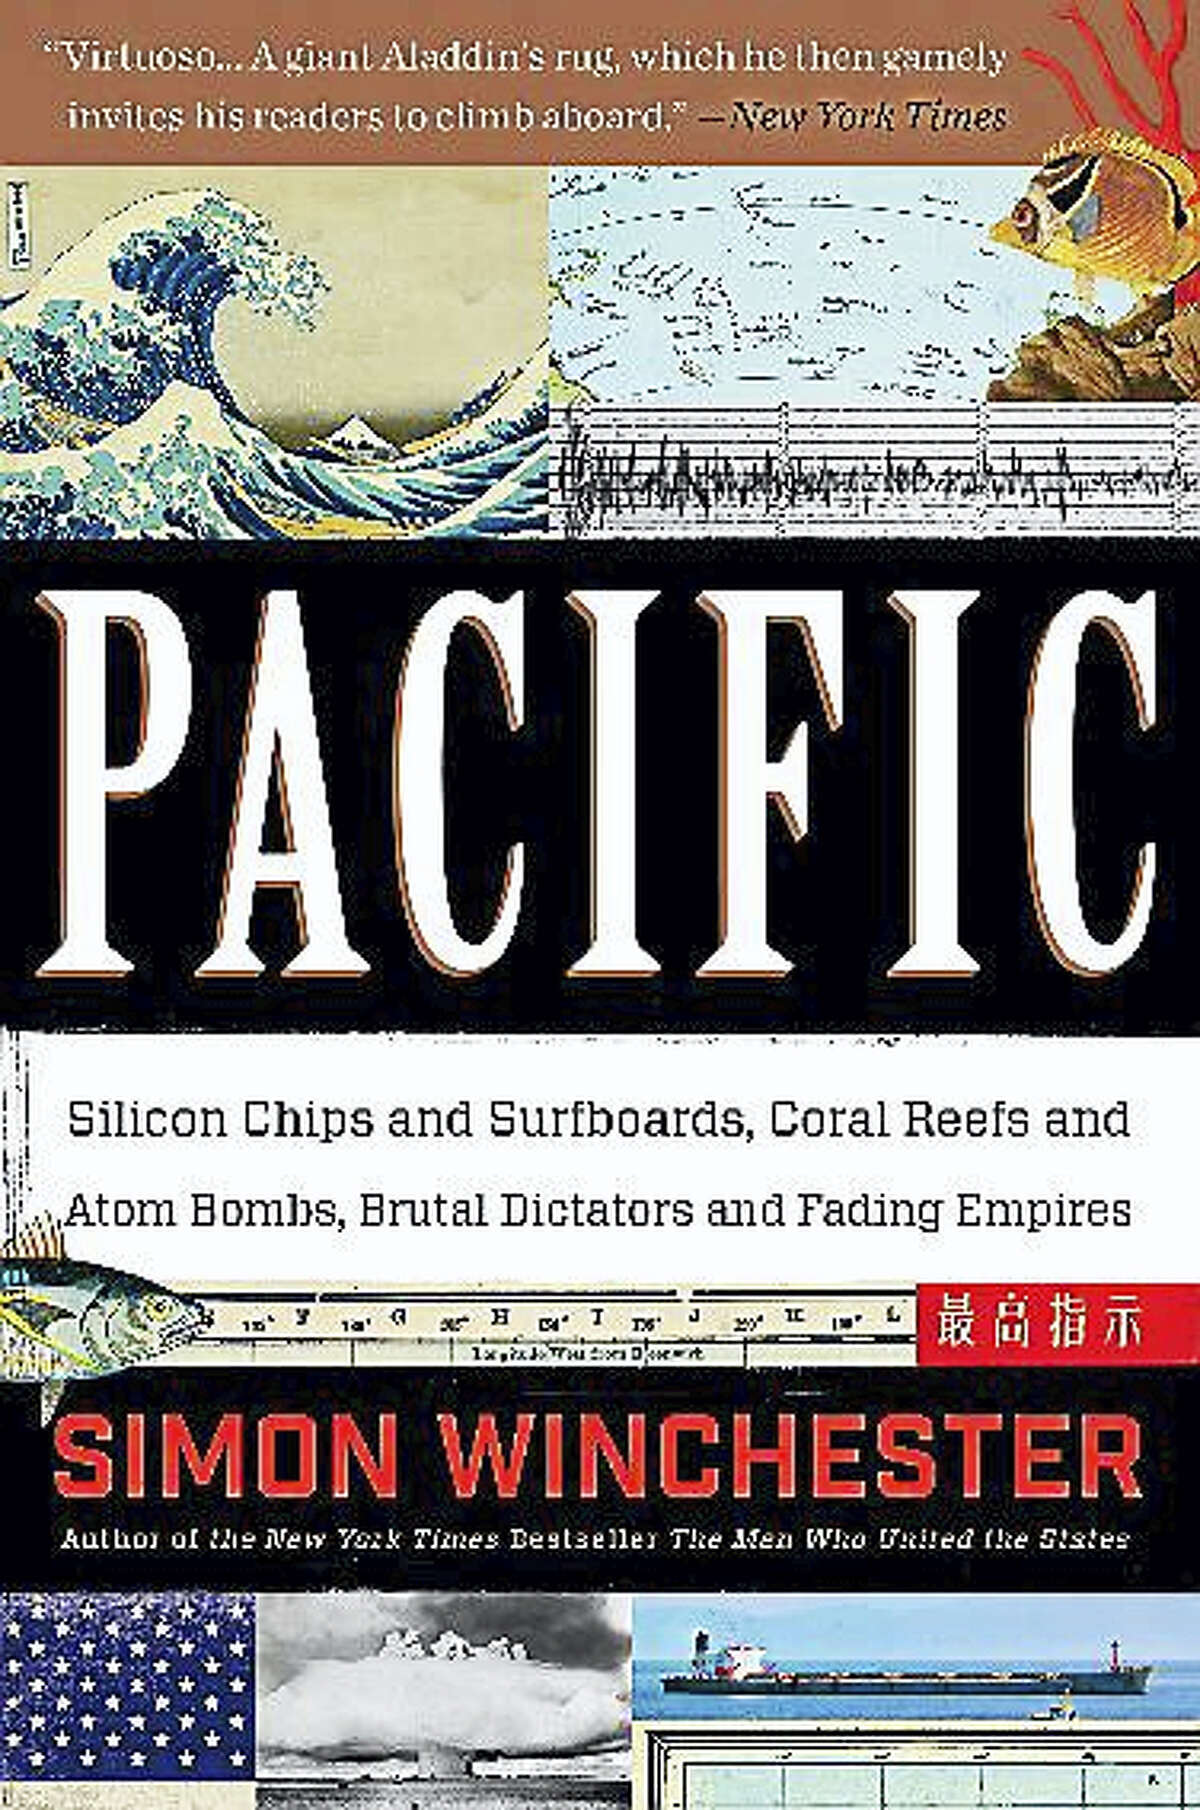 Contributed photoPacific, by Simon Winchester, who will discuss his book at Northwest Connecticut Community College in Winsted.